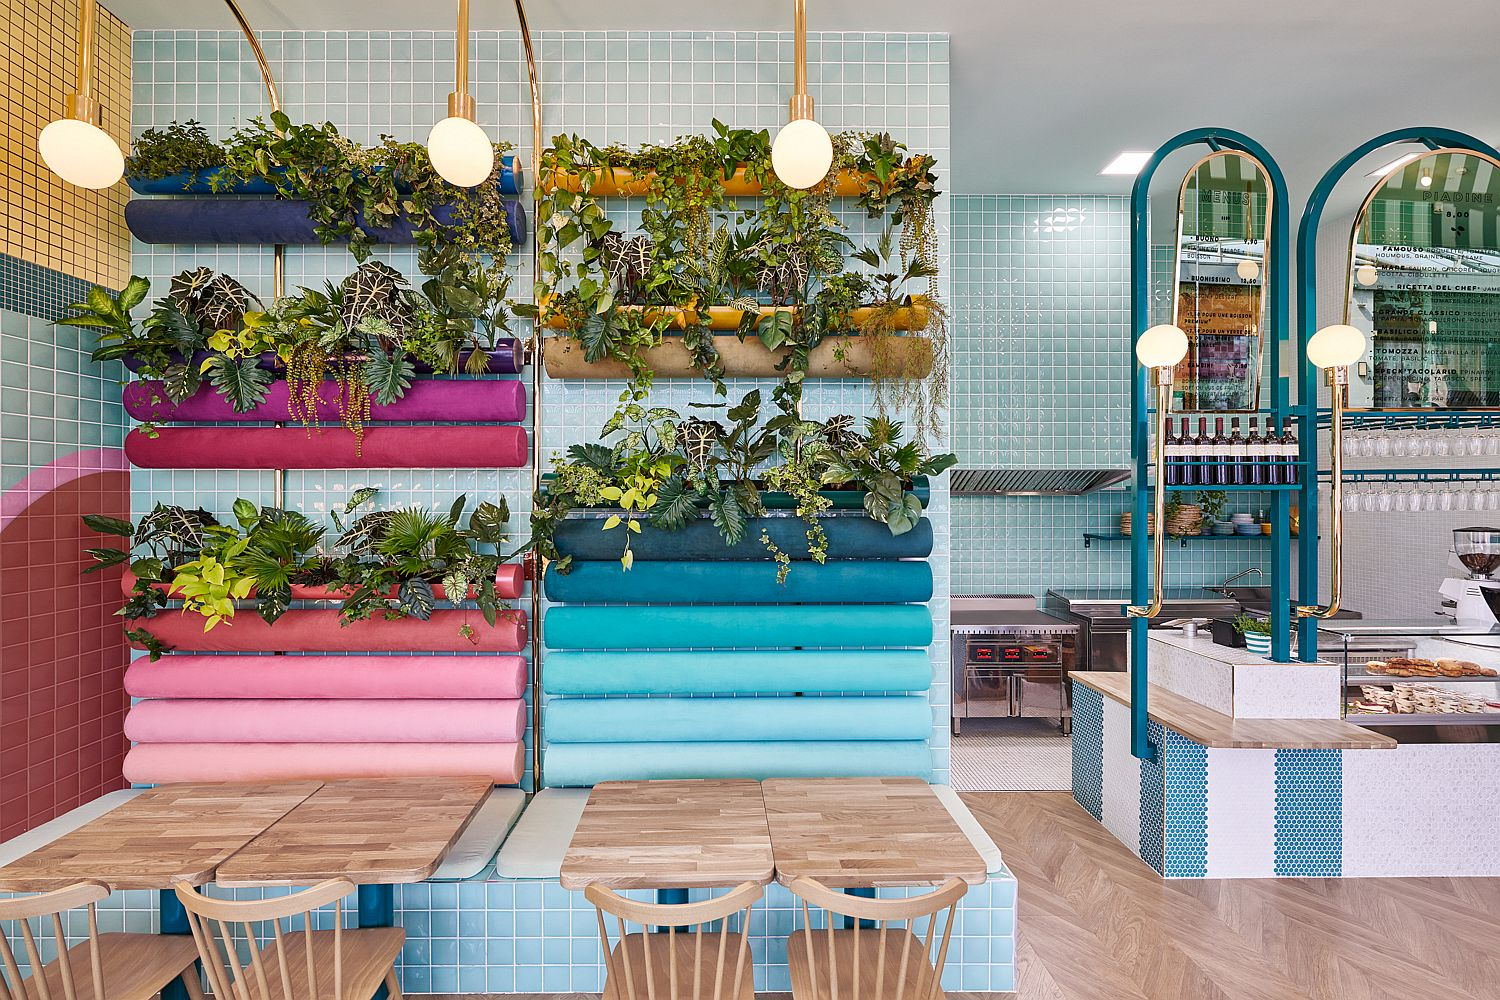 Gorgeous and cheerful interior of Piada in Lyon